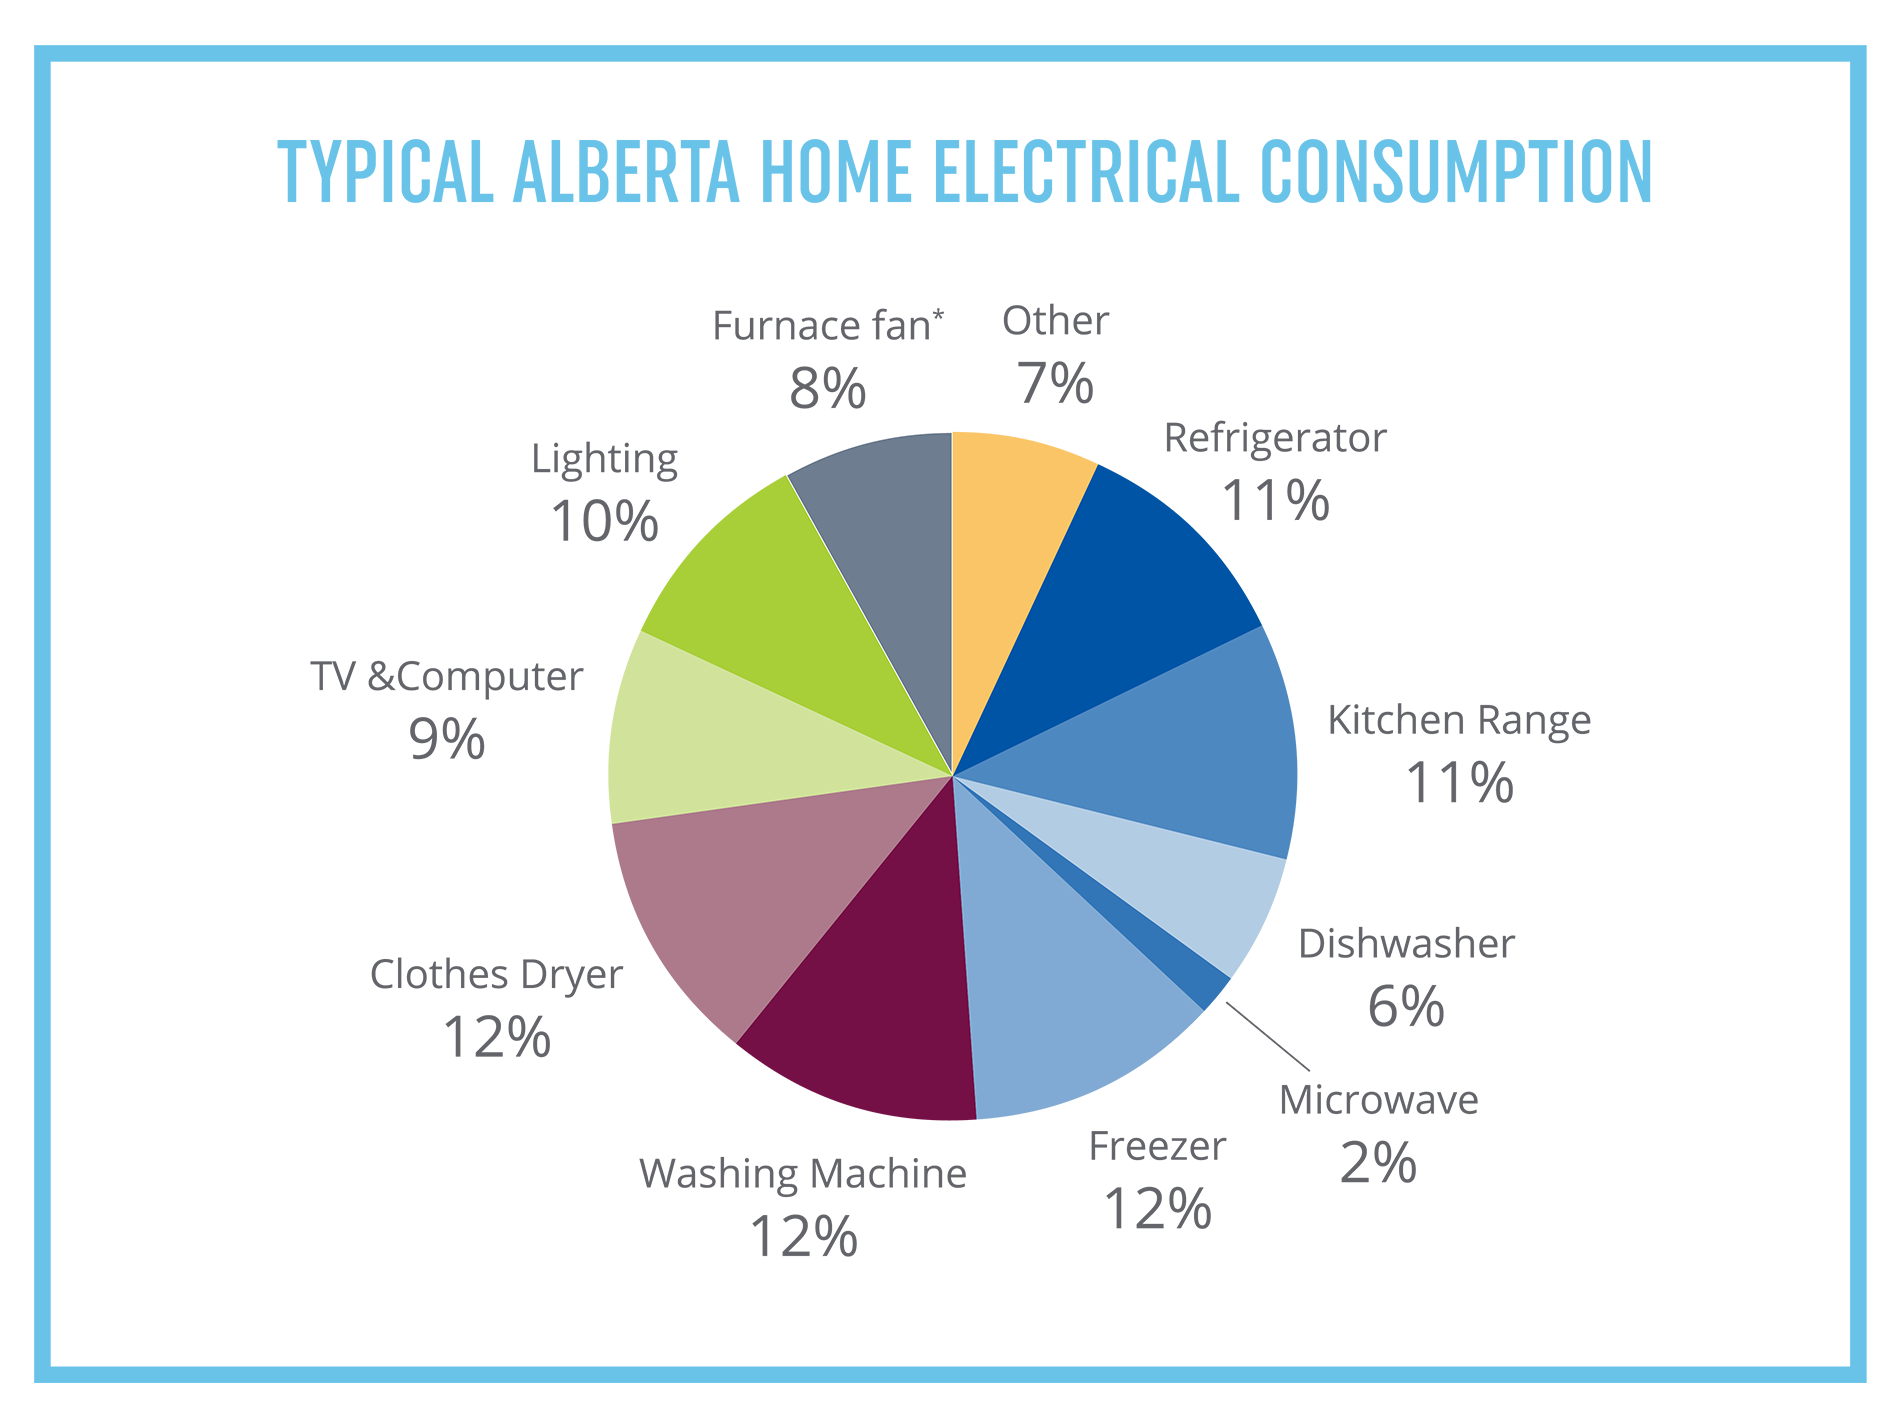 Typical Alberta home electrical consumption